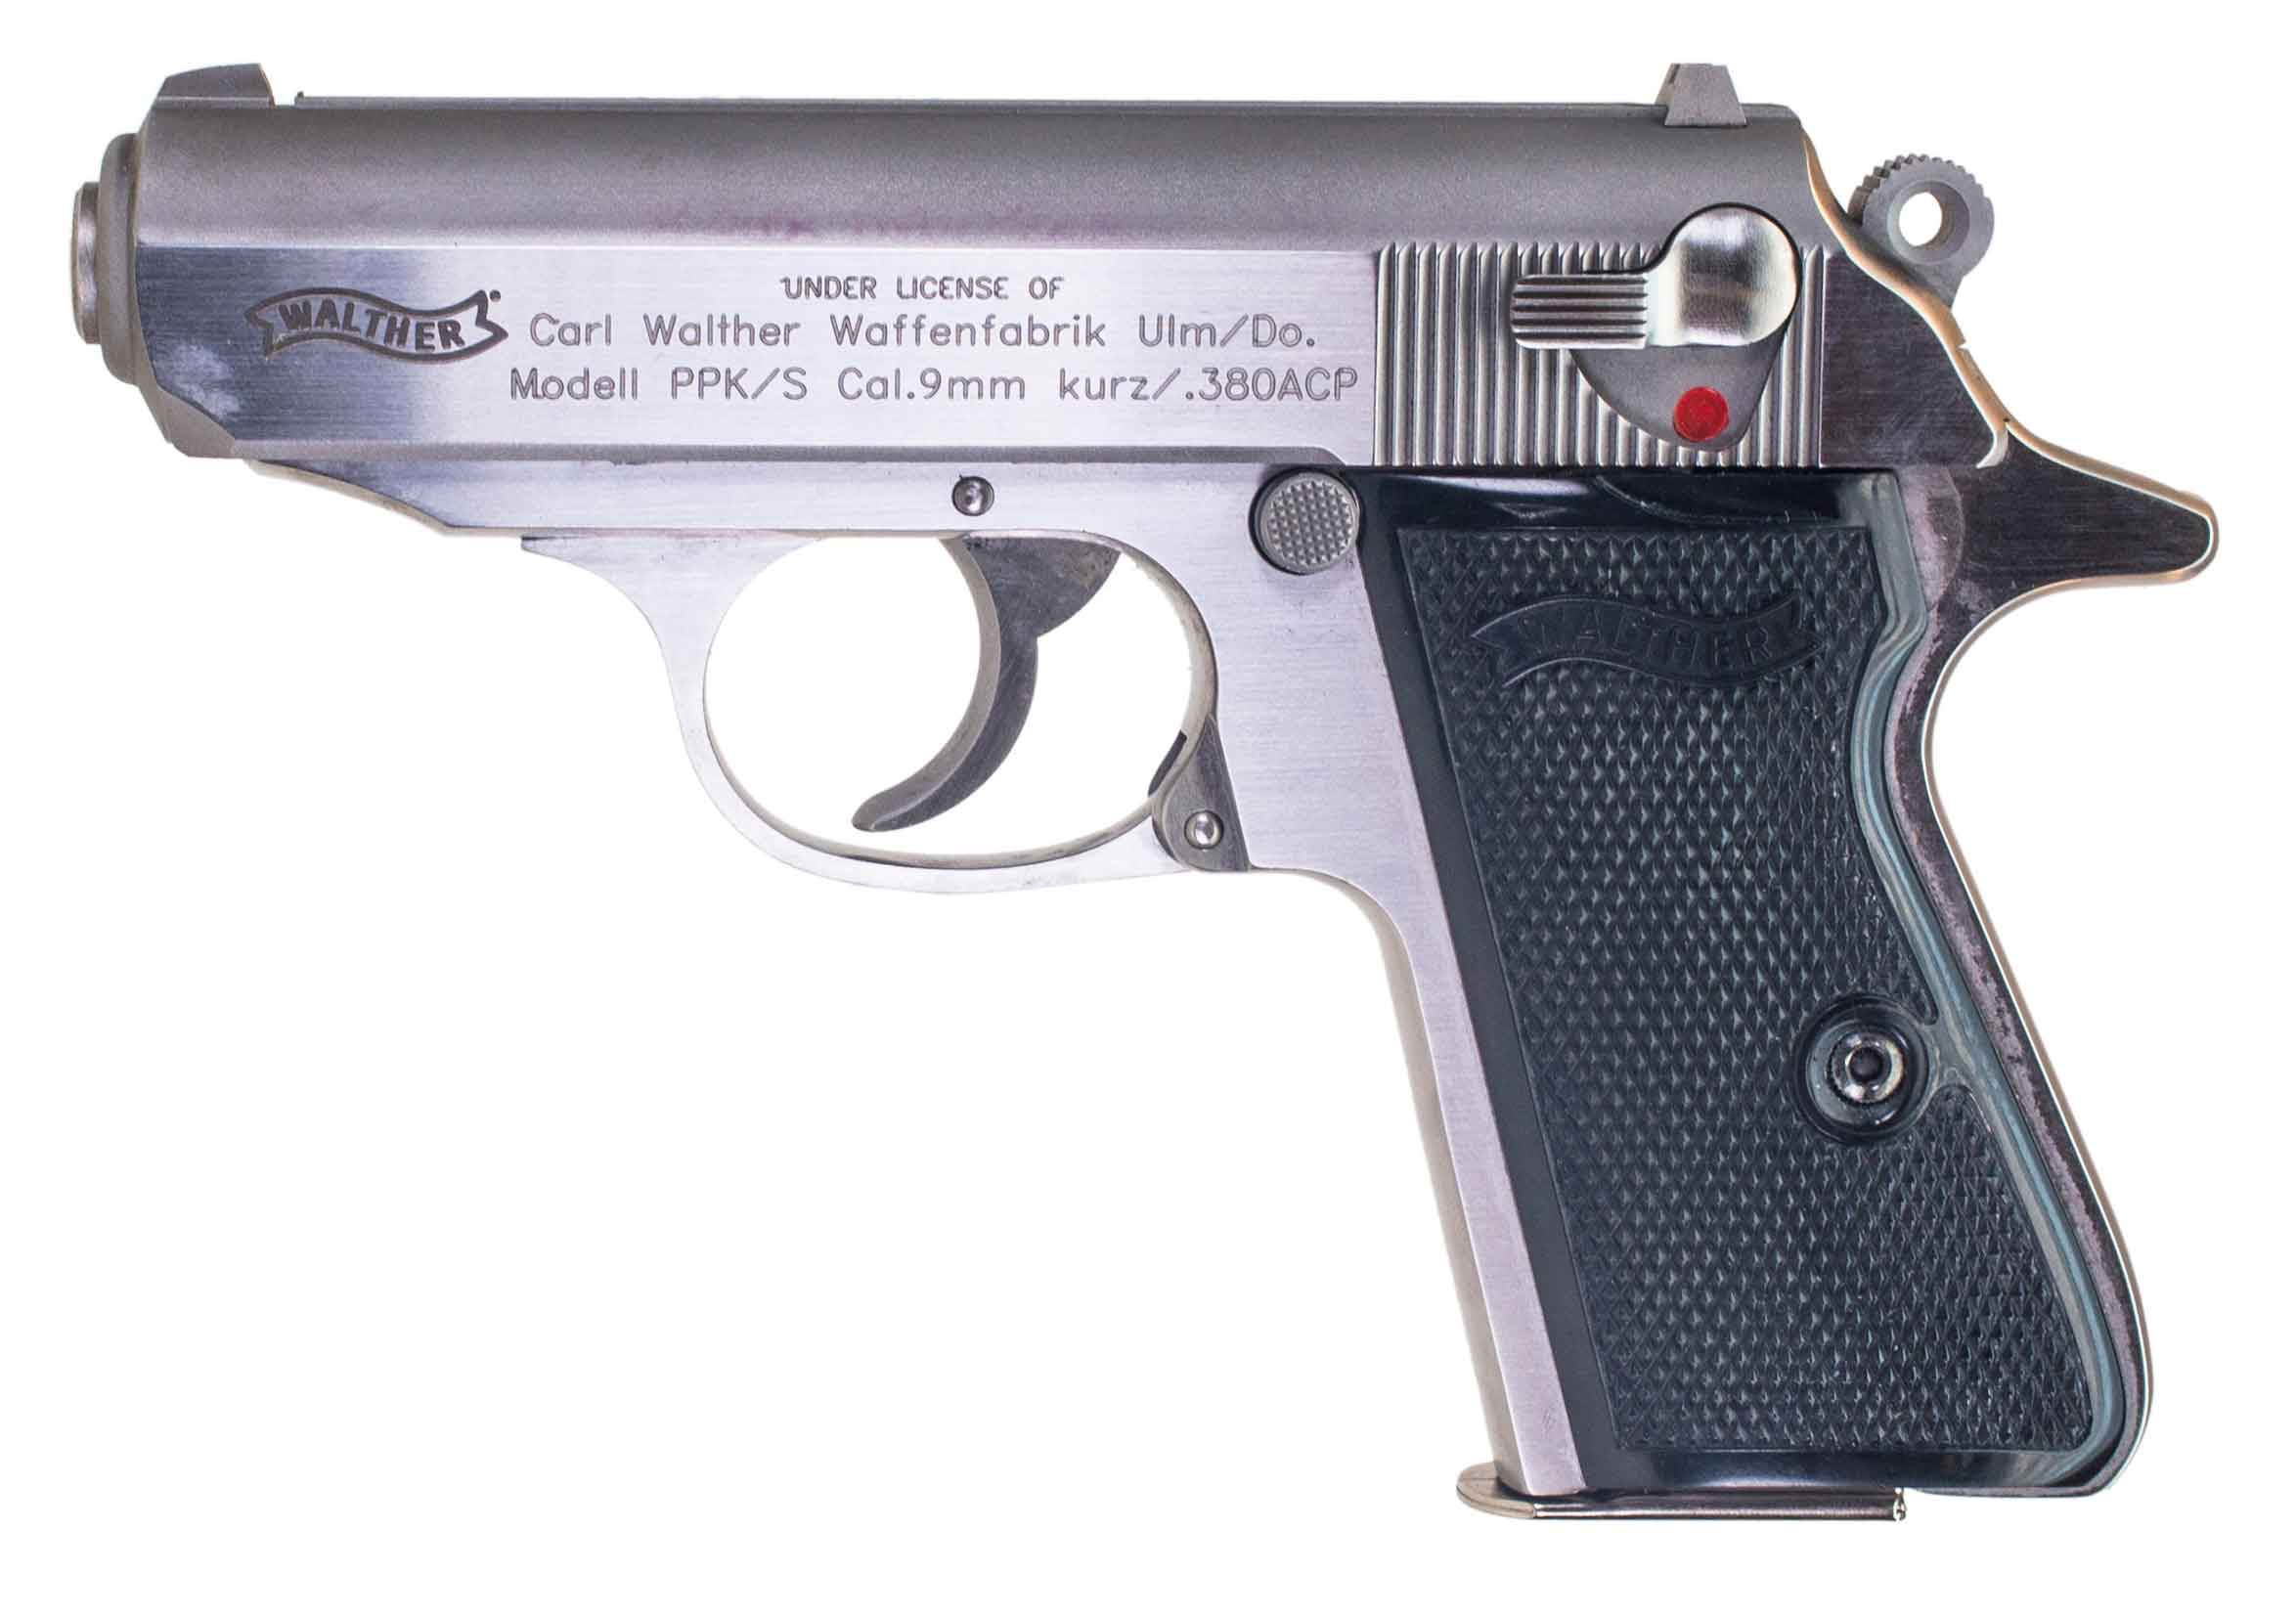 WALTHER PPK/S (Auction ID: 6927539, End Time : Feb. 07, 2017 21:00 ...